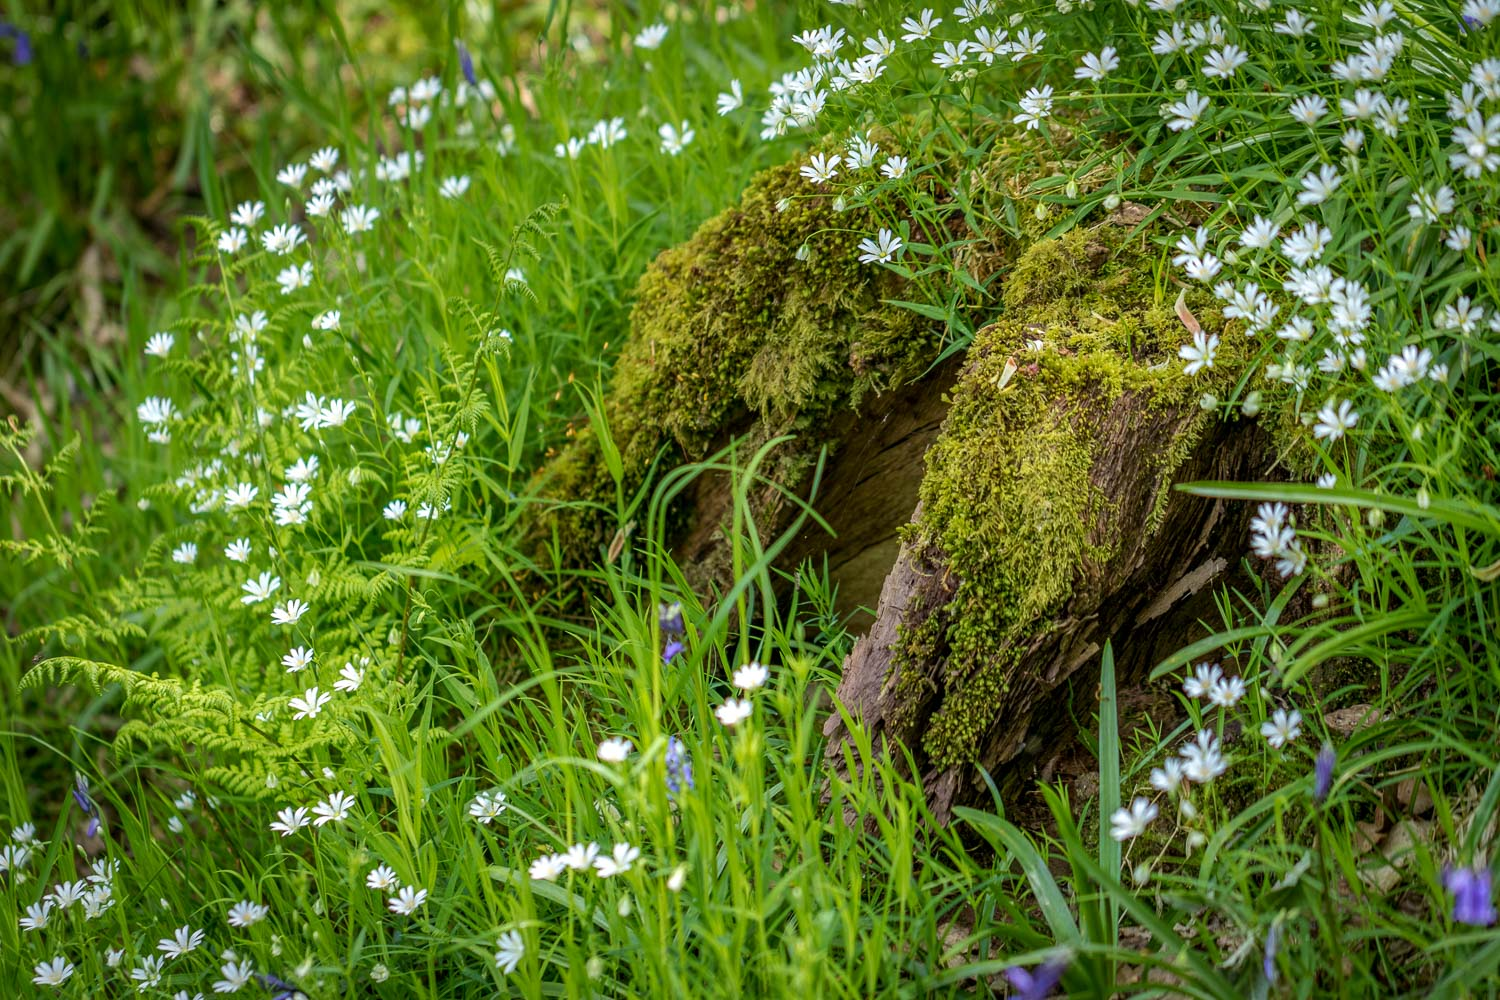 Dufton Ghyll Wood wildflowers